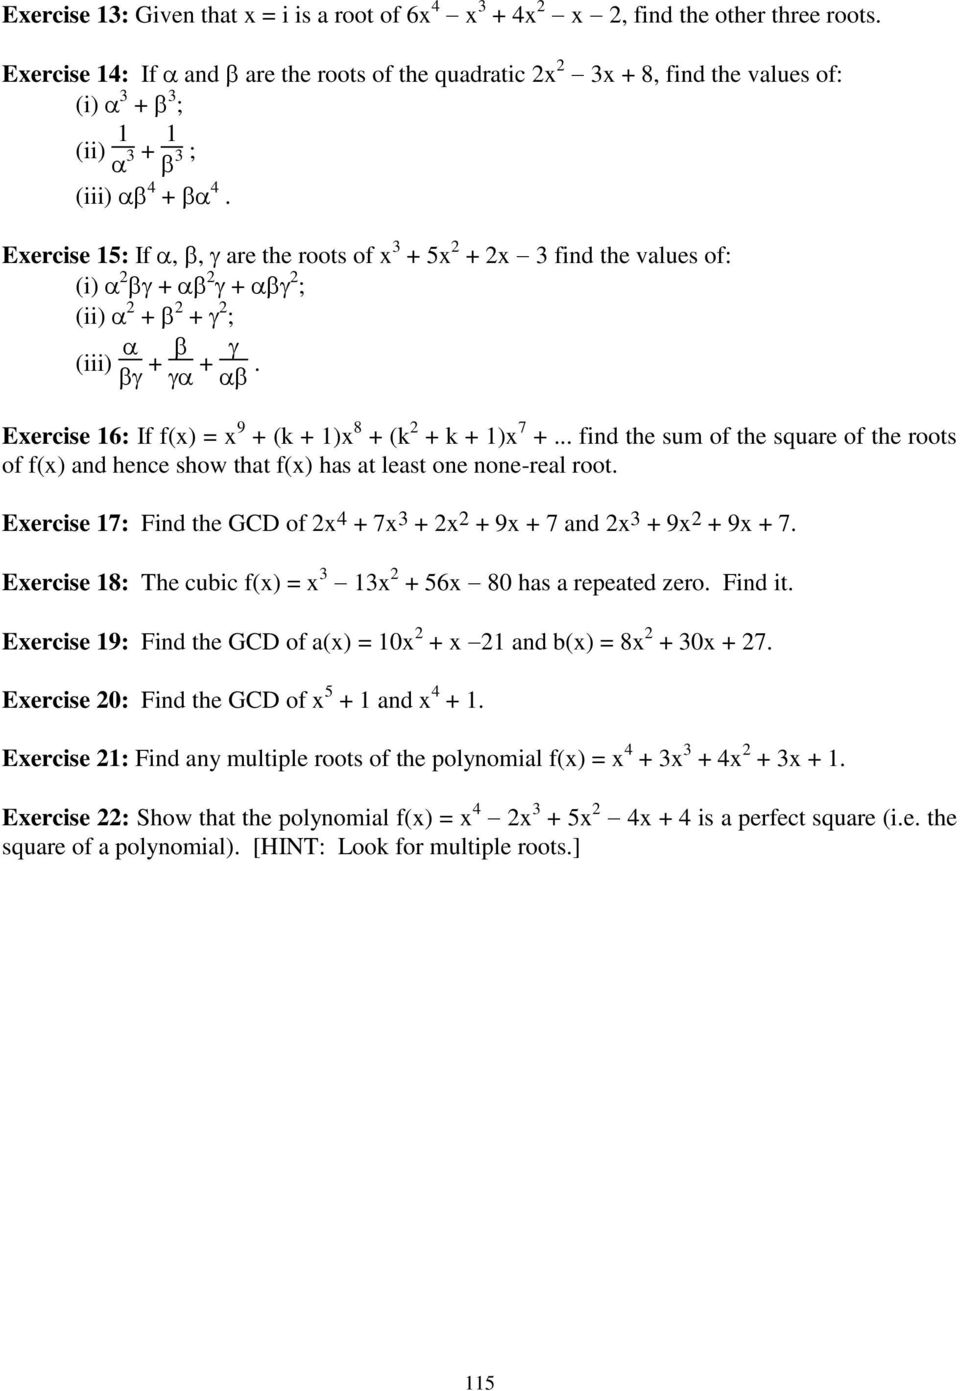 What Are The Roots Of Polynomial Equation X 3 5x 5 2x 2